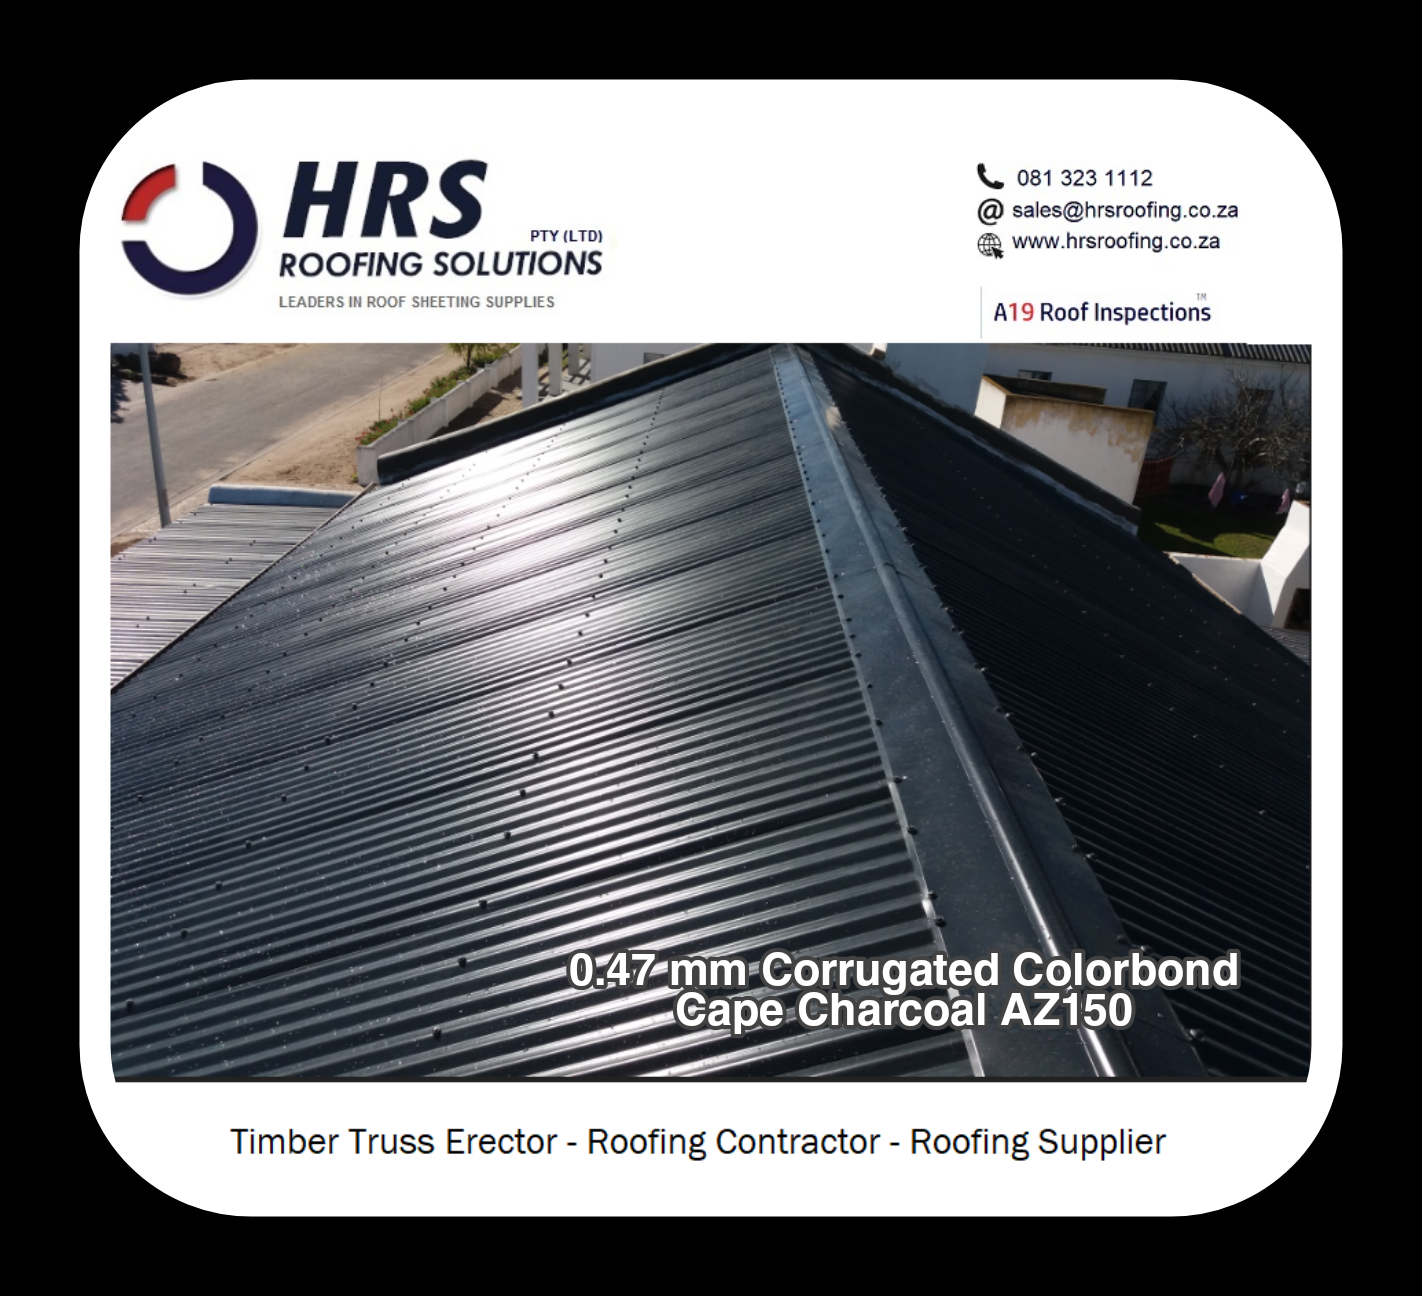 corrugated Colorbond roof sheeting cape town Durbanville hrs roofing solutions - Roofing Gallery